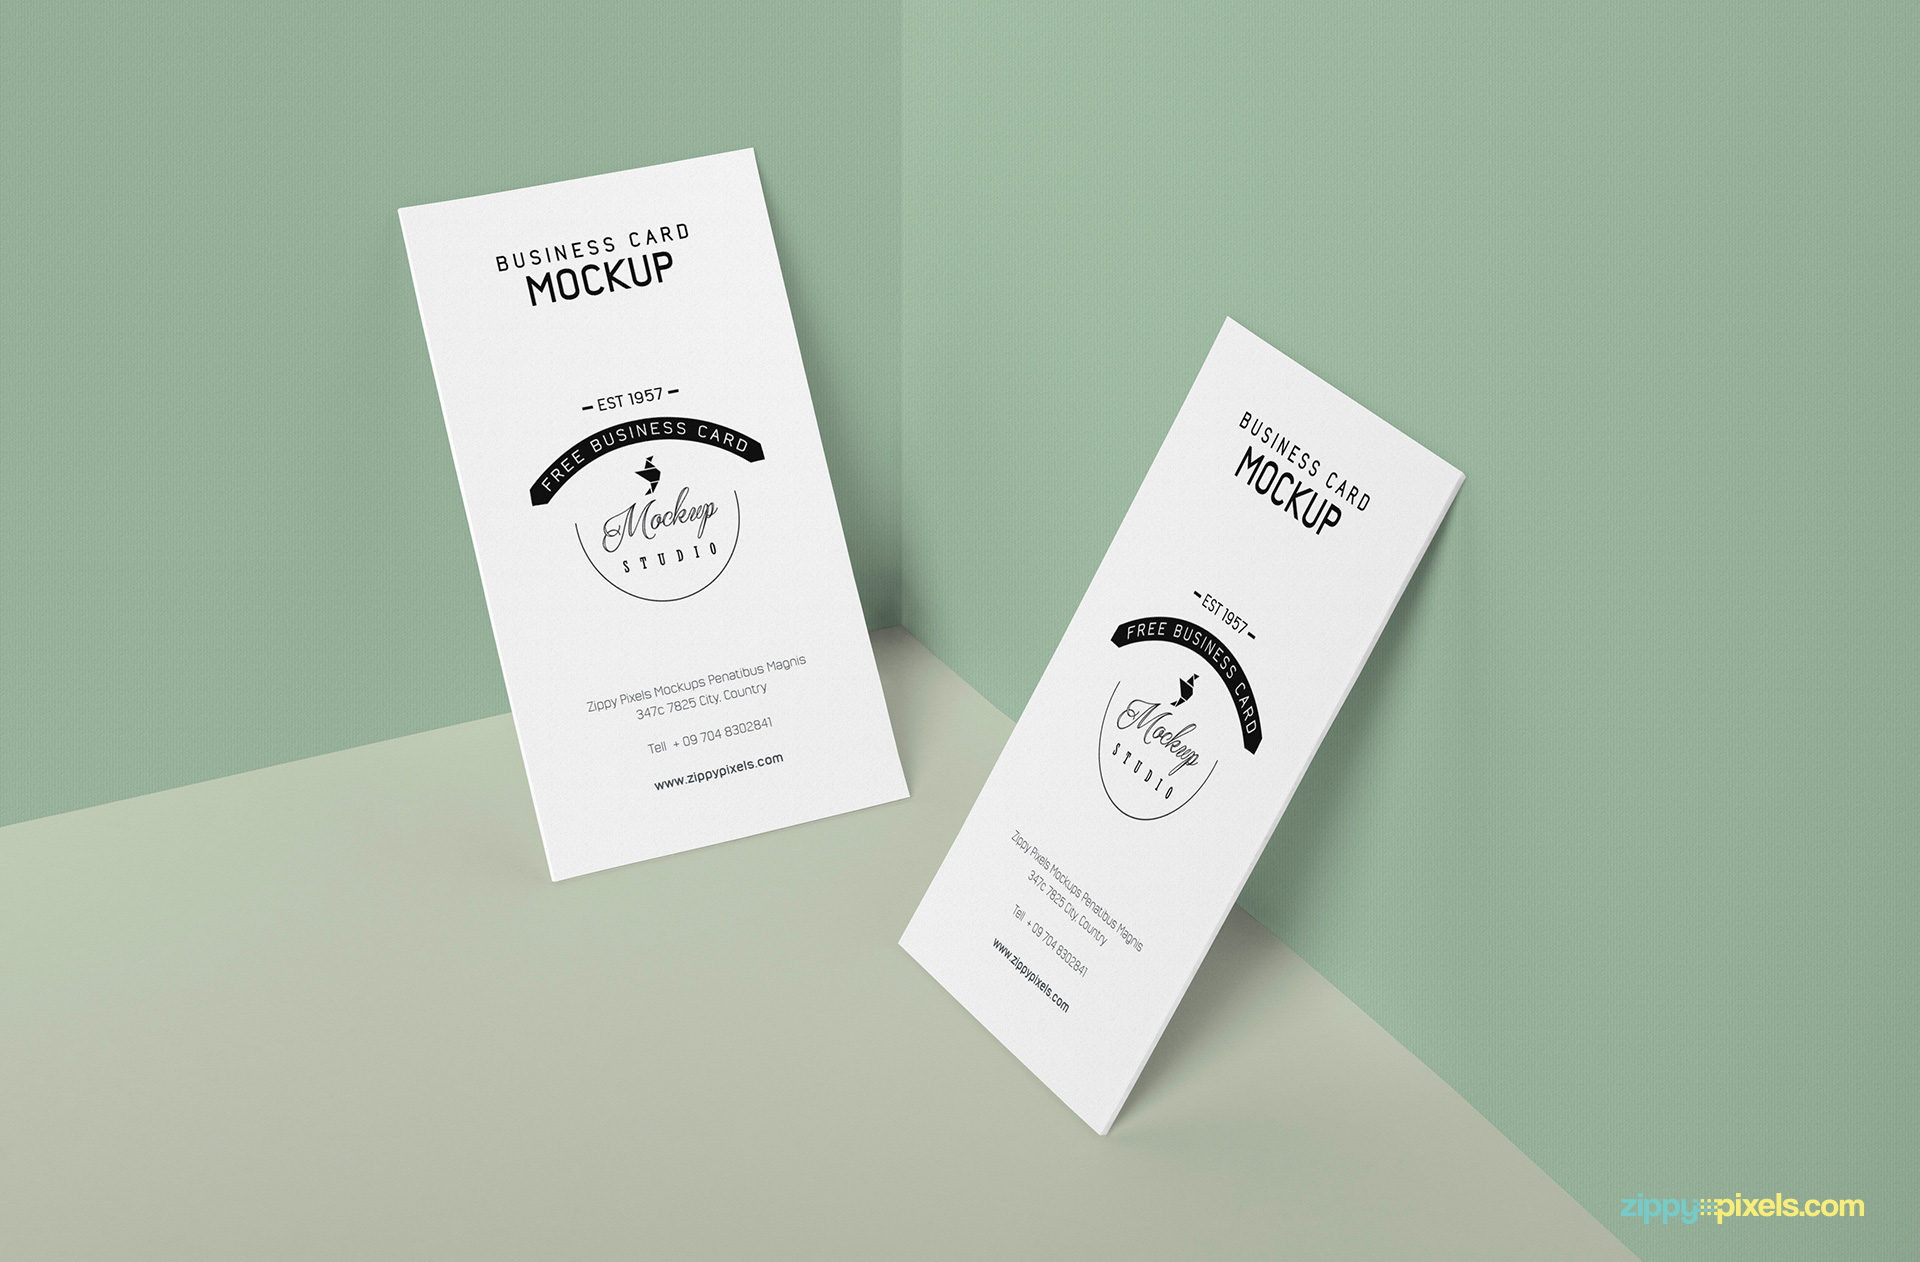 business-card-mockup-standing-with-wall